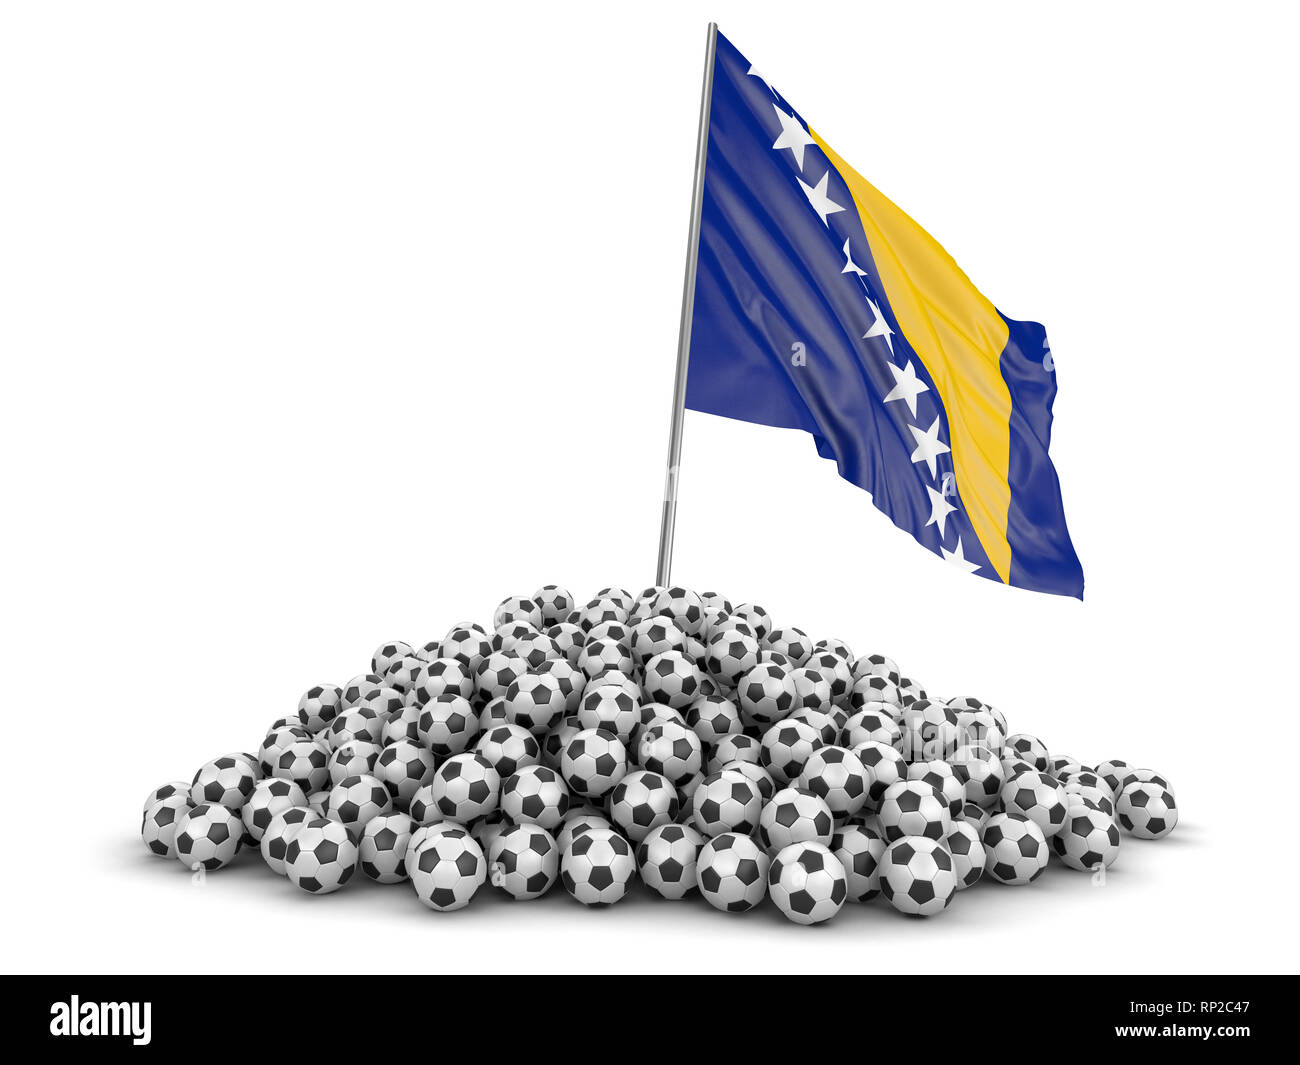 Pile of Soccer footballs and flag. Image with clipping path - Stock Image